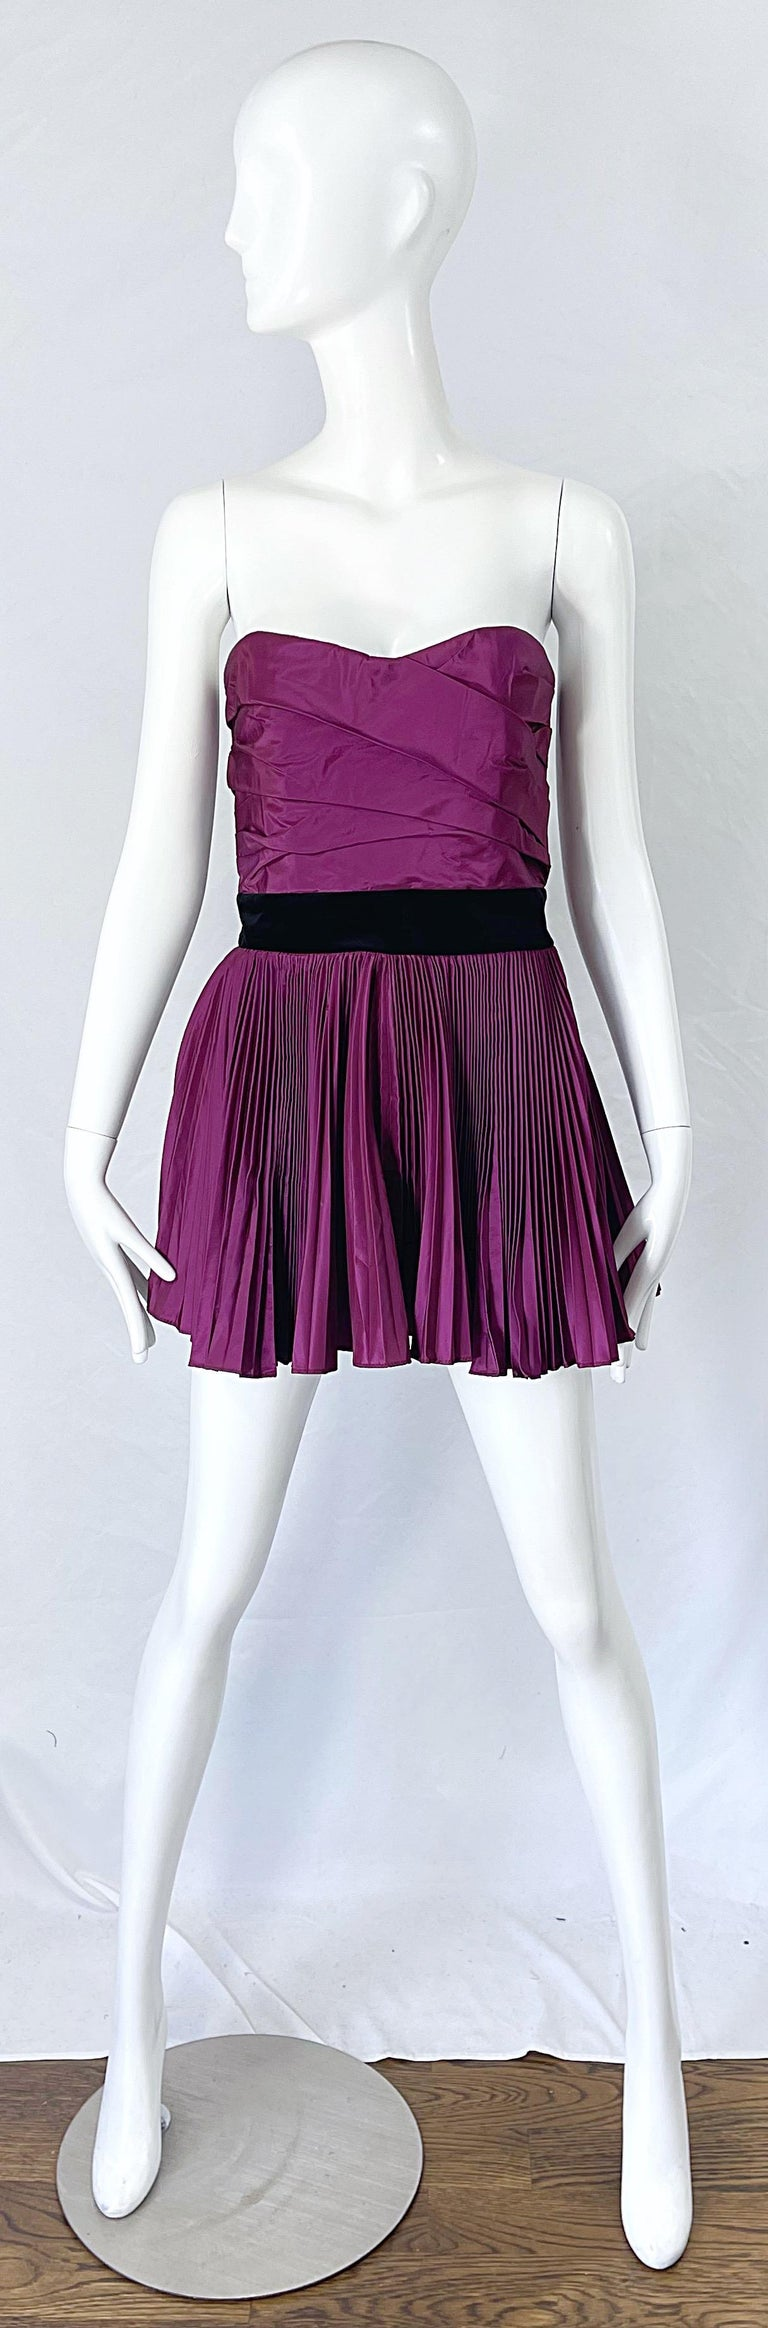 Sexy YVES SAINT LAURENT YSL by Stefano Pilati purple and black silk taffeta micro mini strapless dress or top ! Features a boned tailored bodice with flirty fortuny pleated trapeze skirt. Black velvet waistband with attached tied on the back. Full